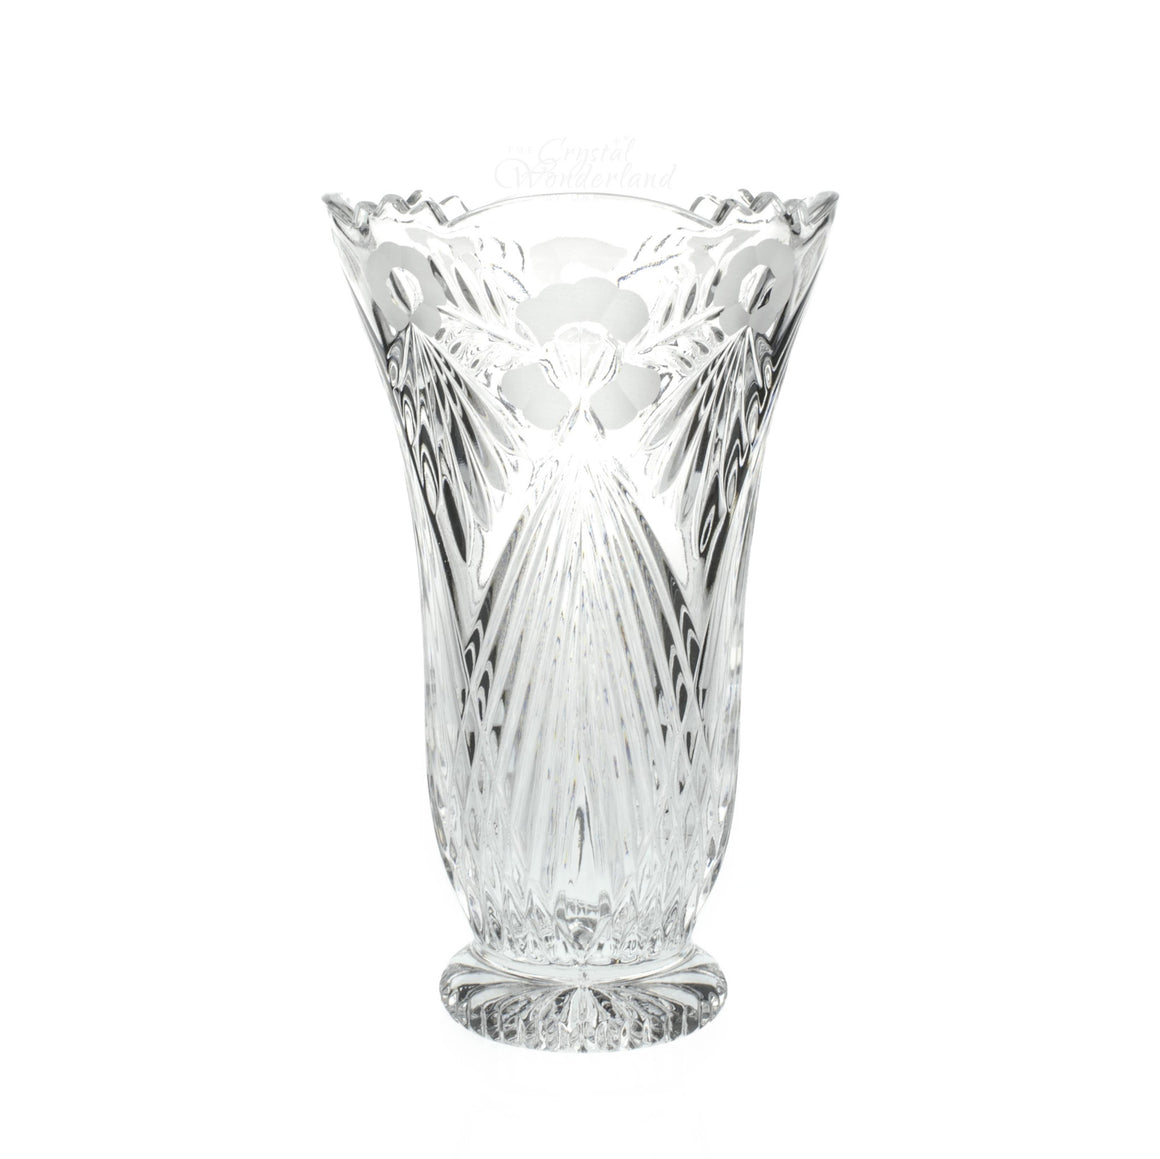 Florence Crystal Vase - The Crystal Wonderland